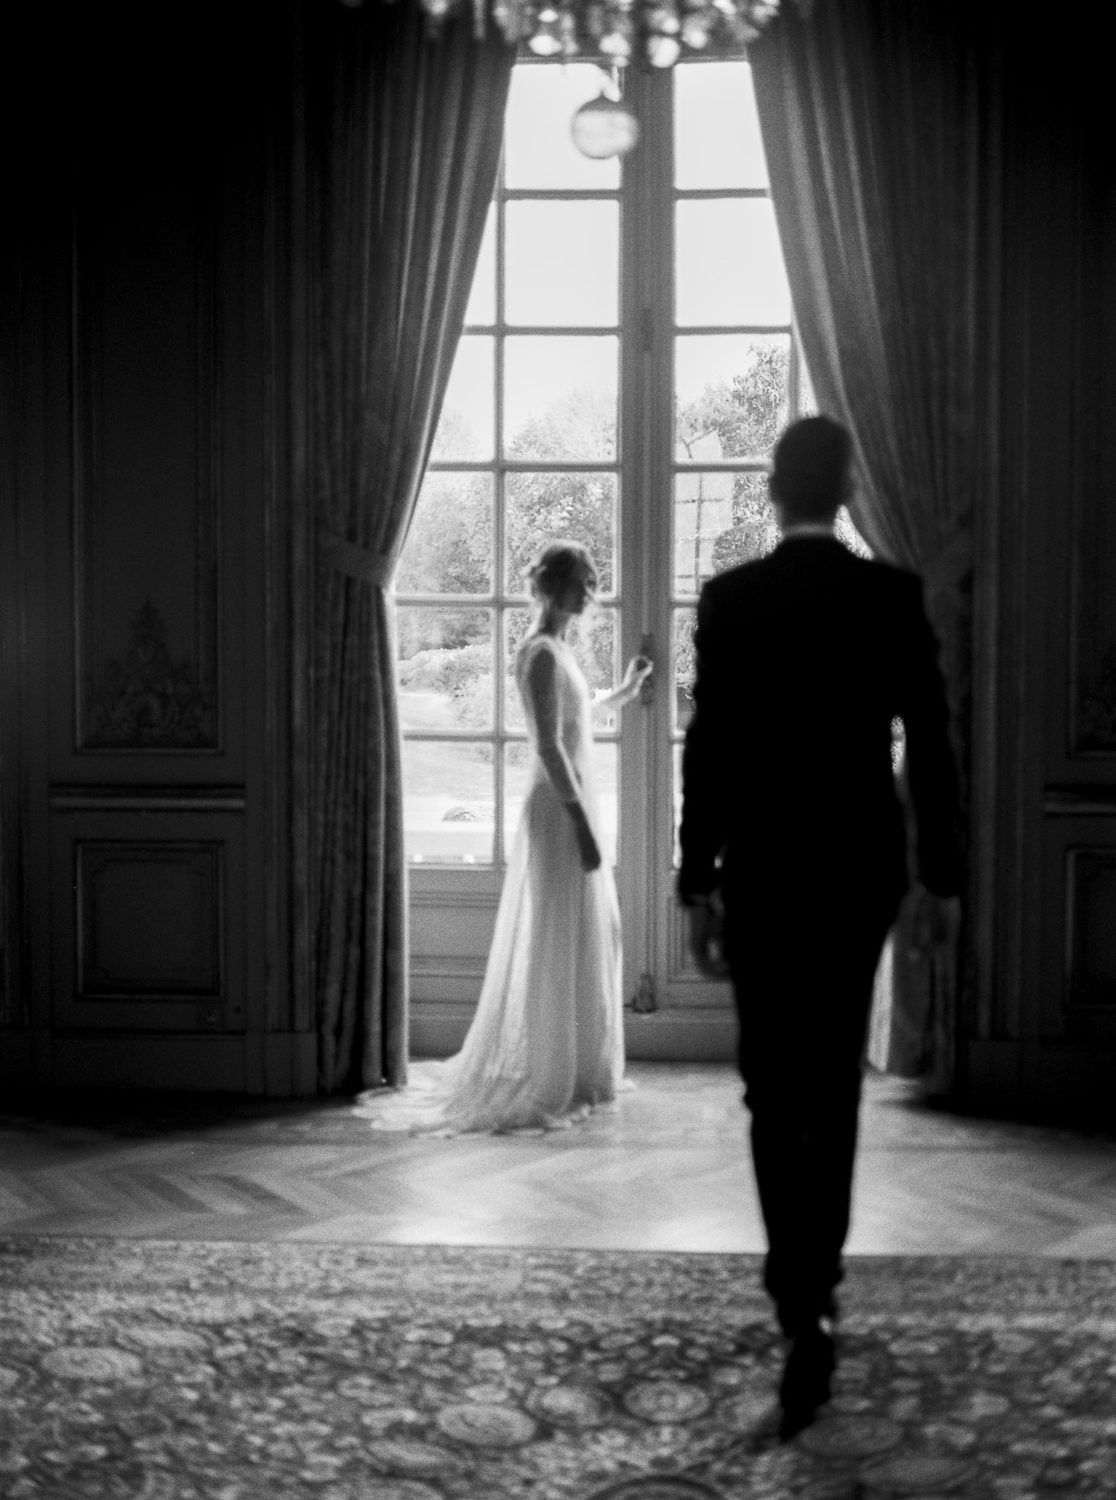 luxury black tie wedding, Loire Valley, chateau d'artigny wedding